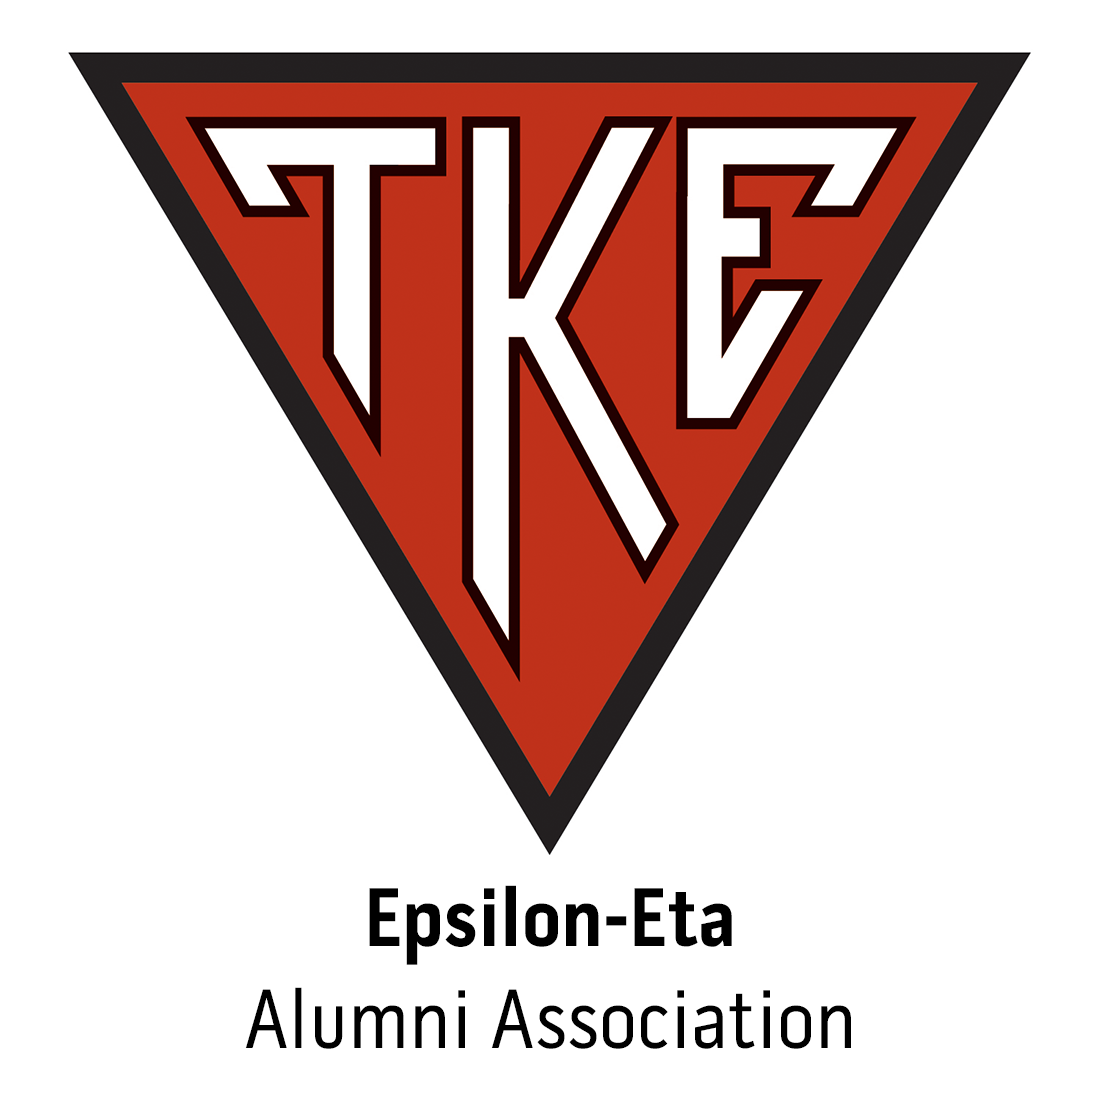 Epsilon-Eta Alumni Association Alumni at Southwestern Oklahoma State University